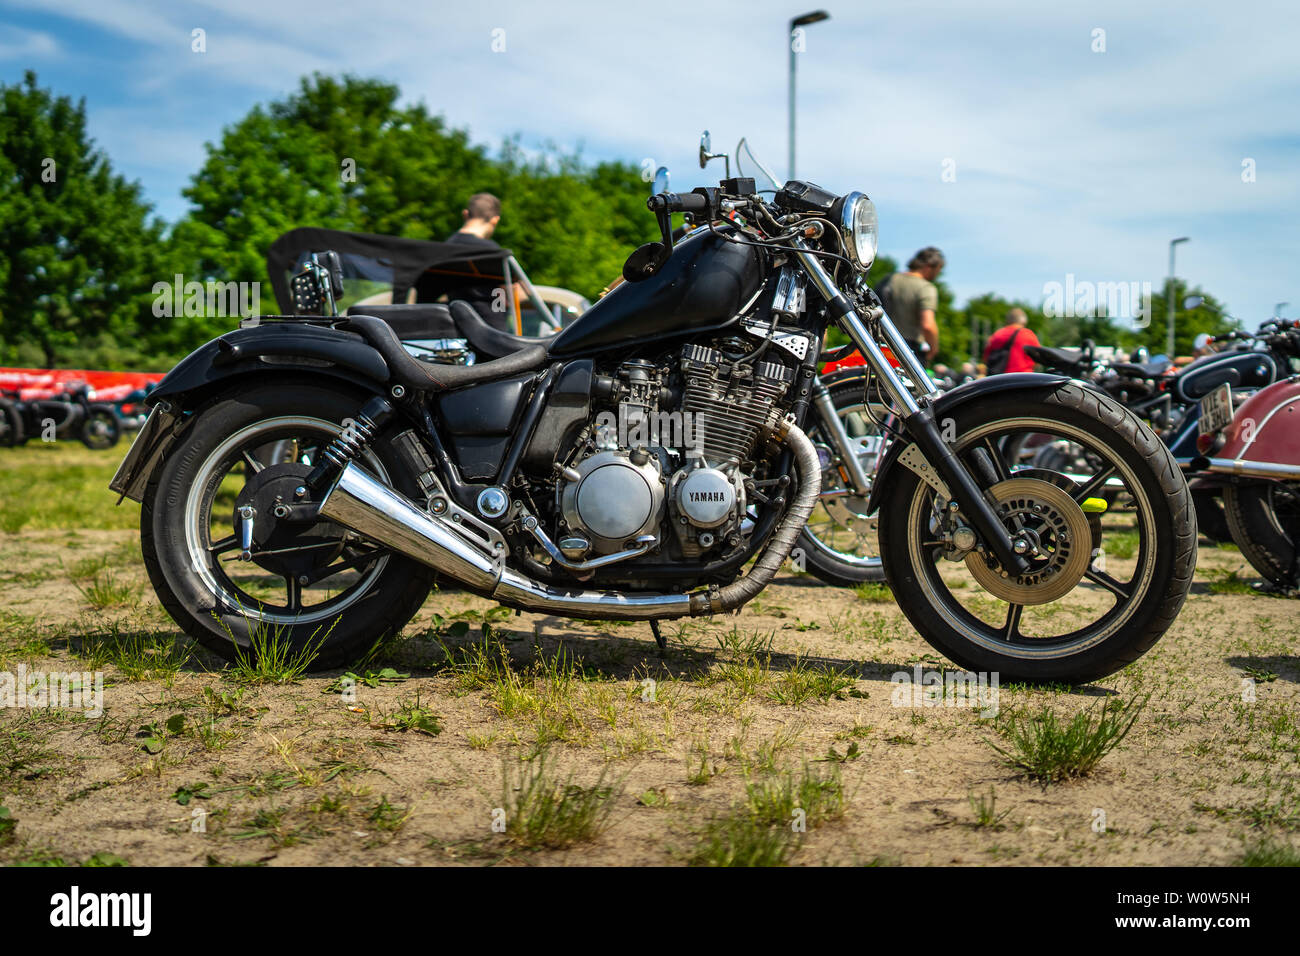 Retro Yamaha Stock Photos & Retro Yamaha Stock Images - Alamy